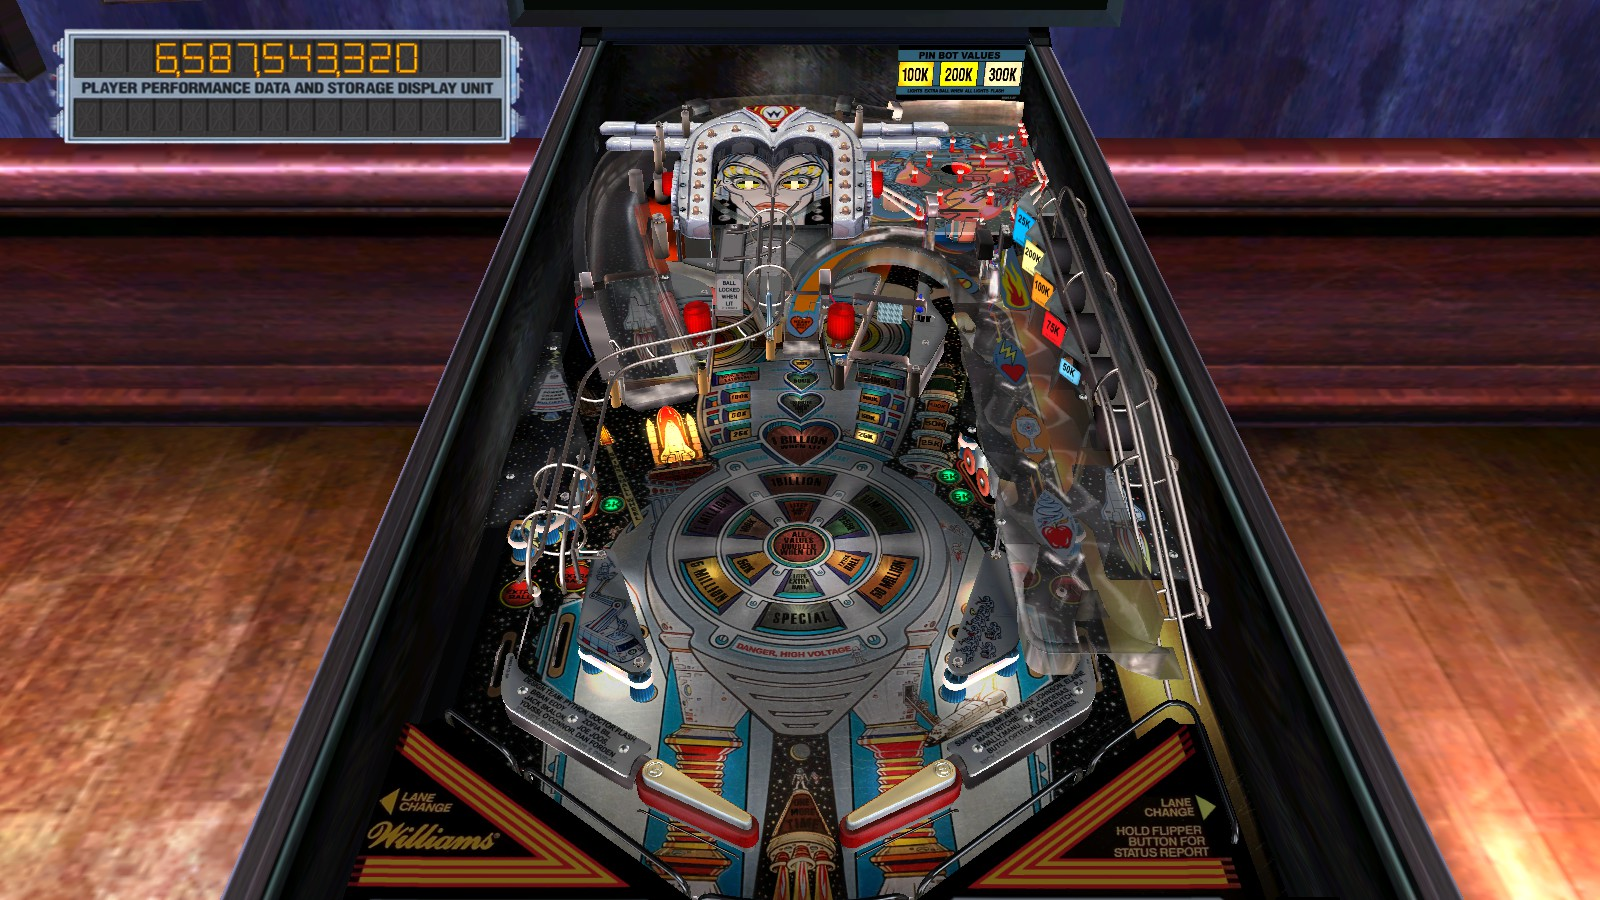 Deteacher: Pinball Arcade: The Machine: Bride of Pin*Bot (PC) 6,587,543,320 points on 2015-08-14 14:29:06